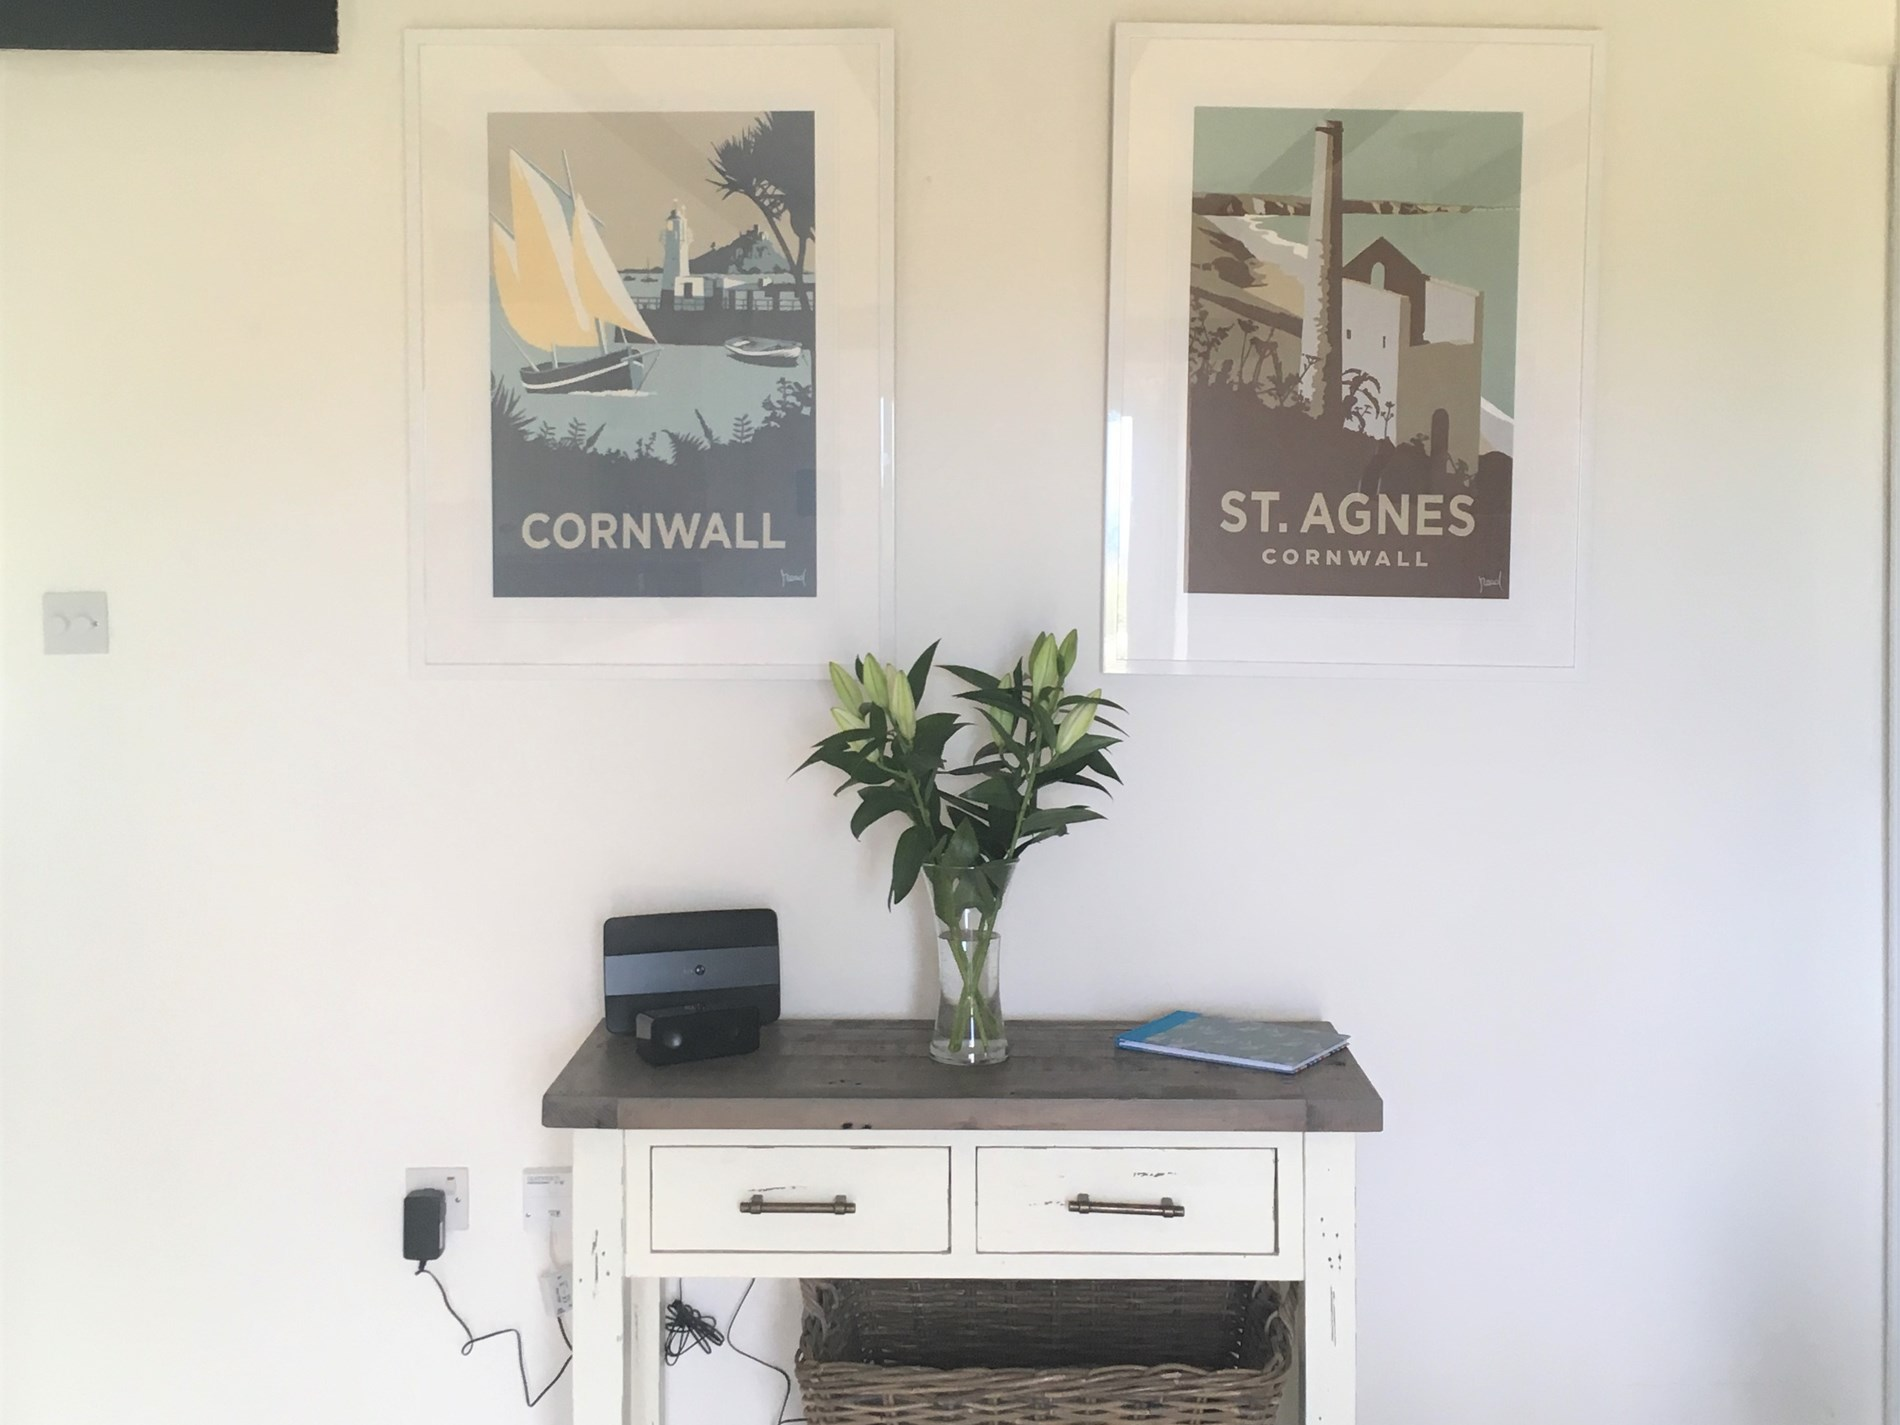 2 Bedroom Cottage in St. Agnes, Cornwall